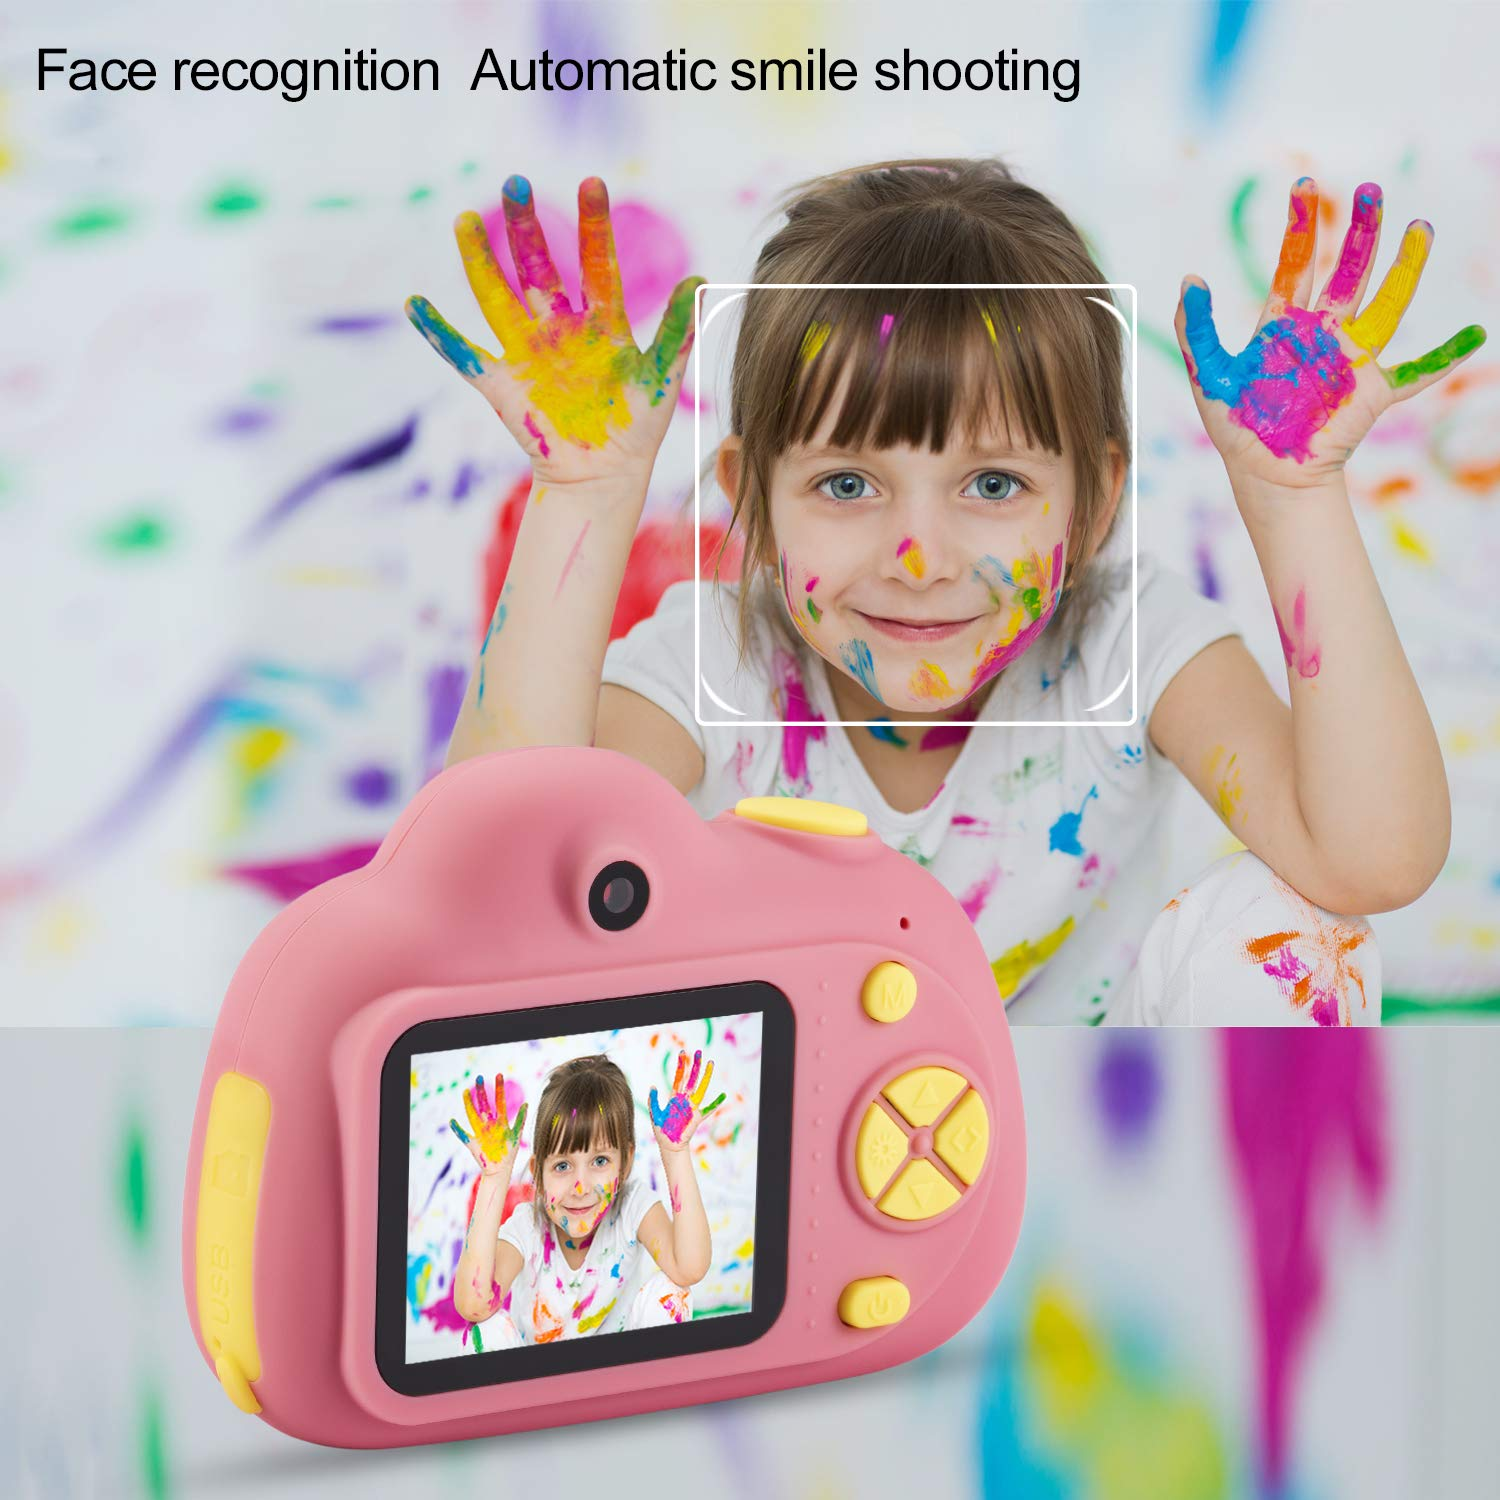 omzer Gift Kids Camera Toys for Girls, Cute Children Cameras Mini Camcorder for 3-8 Years Old Girl with 8MP HD Video Lens Great for Shooting, Deep Pink(16GB Memory Card Included) by omzer (Image #4)